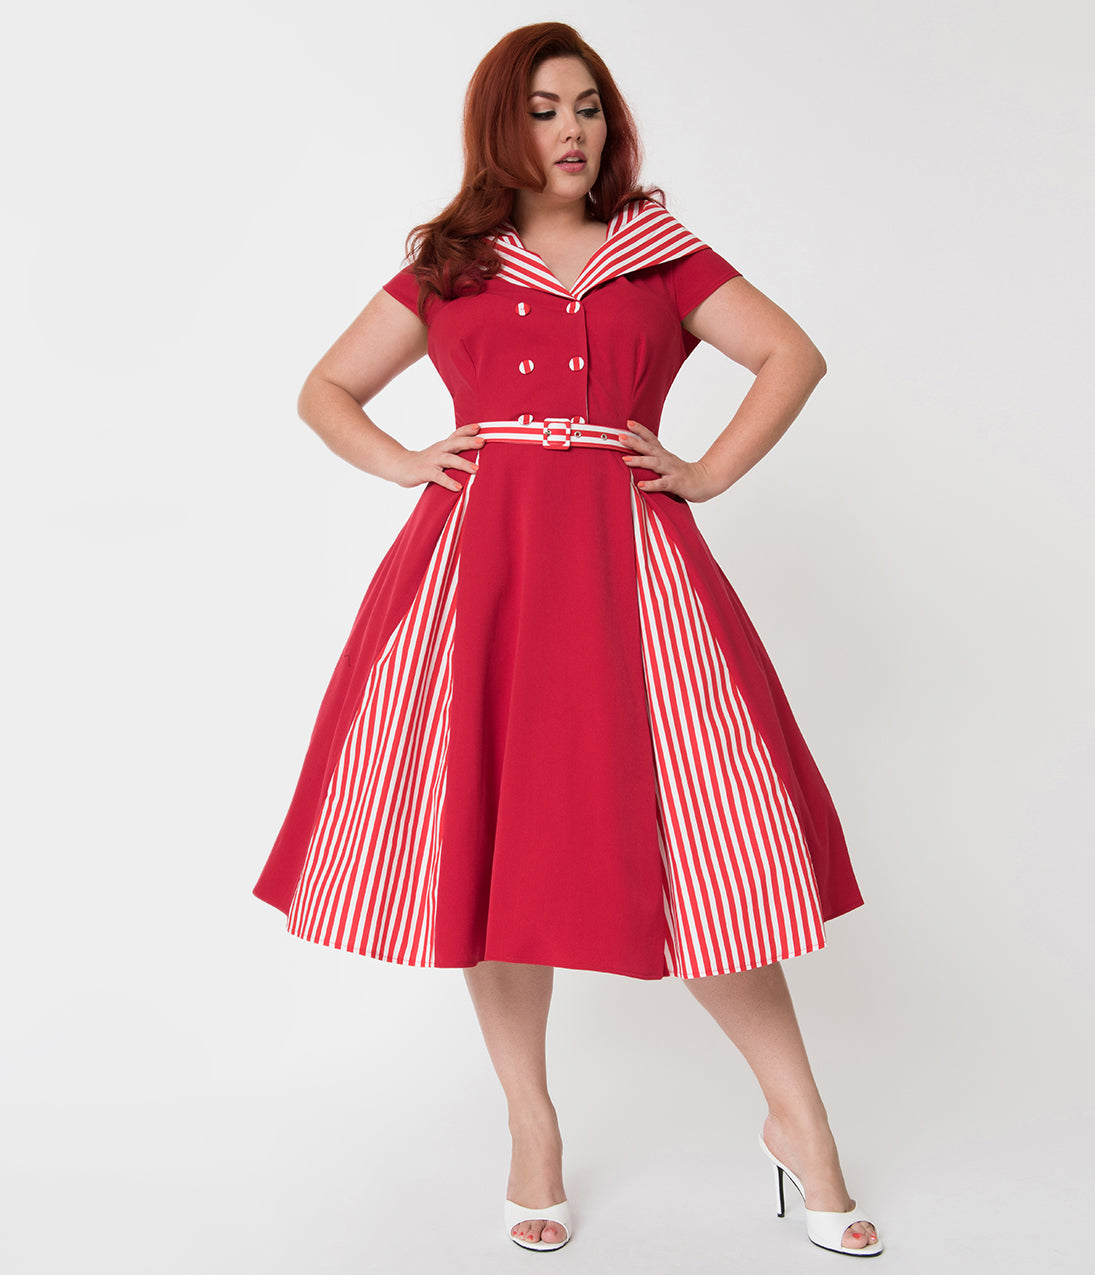 Plus Size Swing Dresses, Vintage Dresses Miss Candy Floss Plus Size Red  White Stripe Roman Holiday Giustina Swing Dress $96.00 AT vintagedancer.com